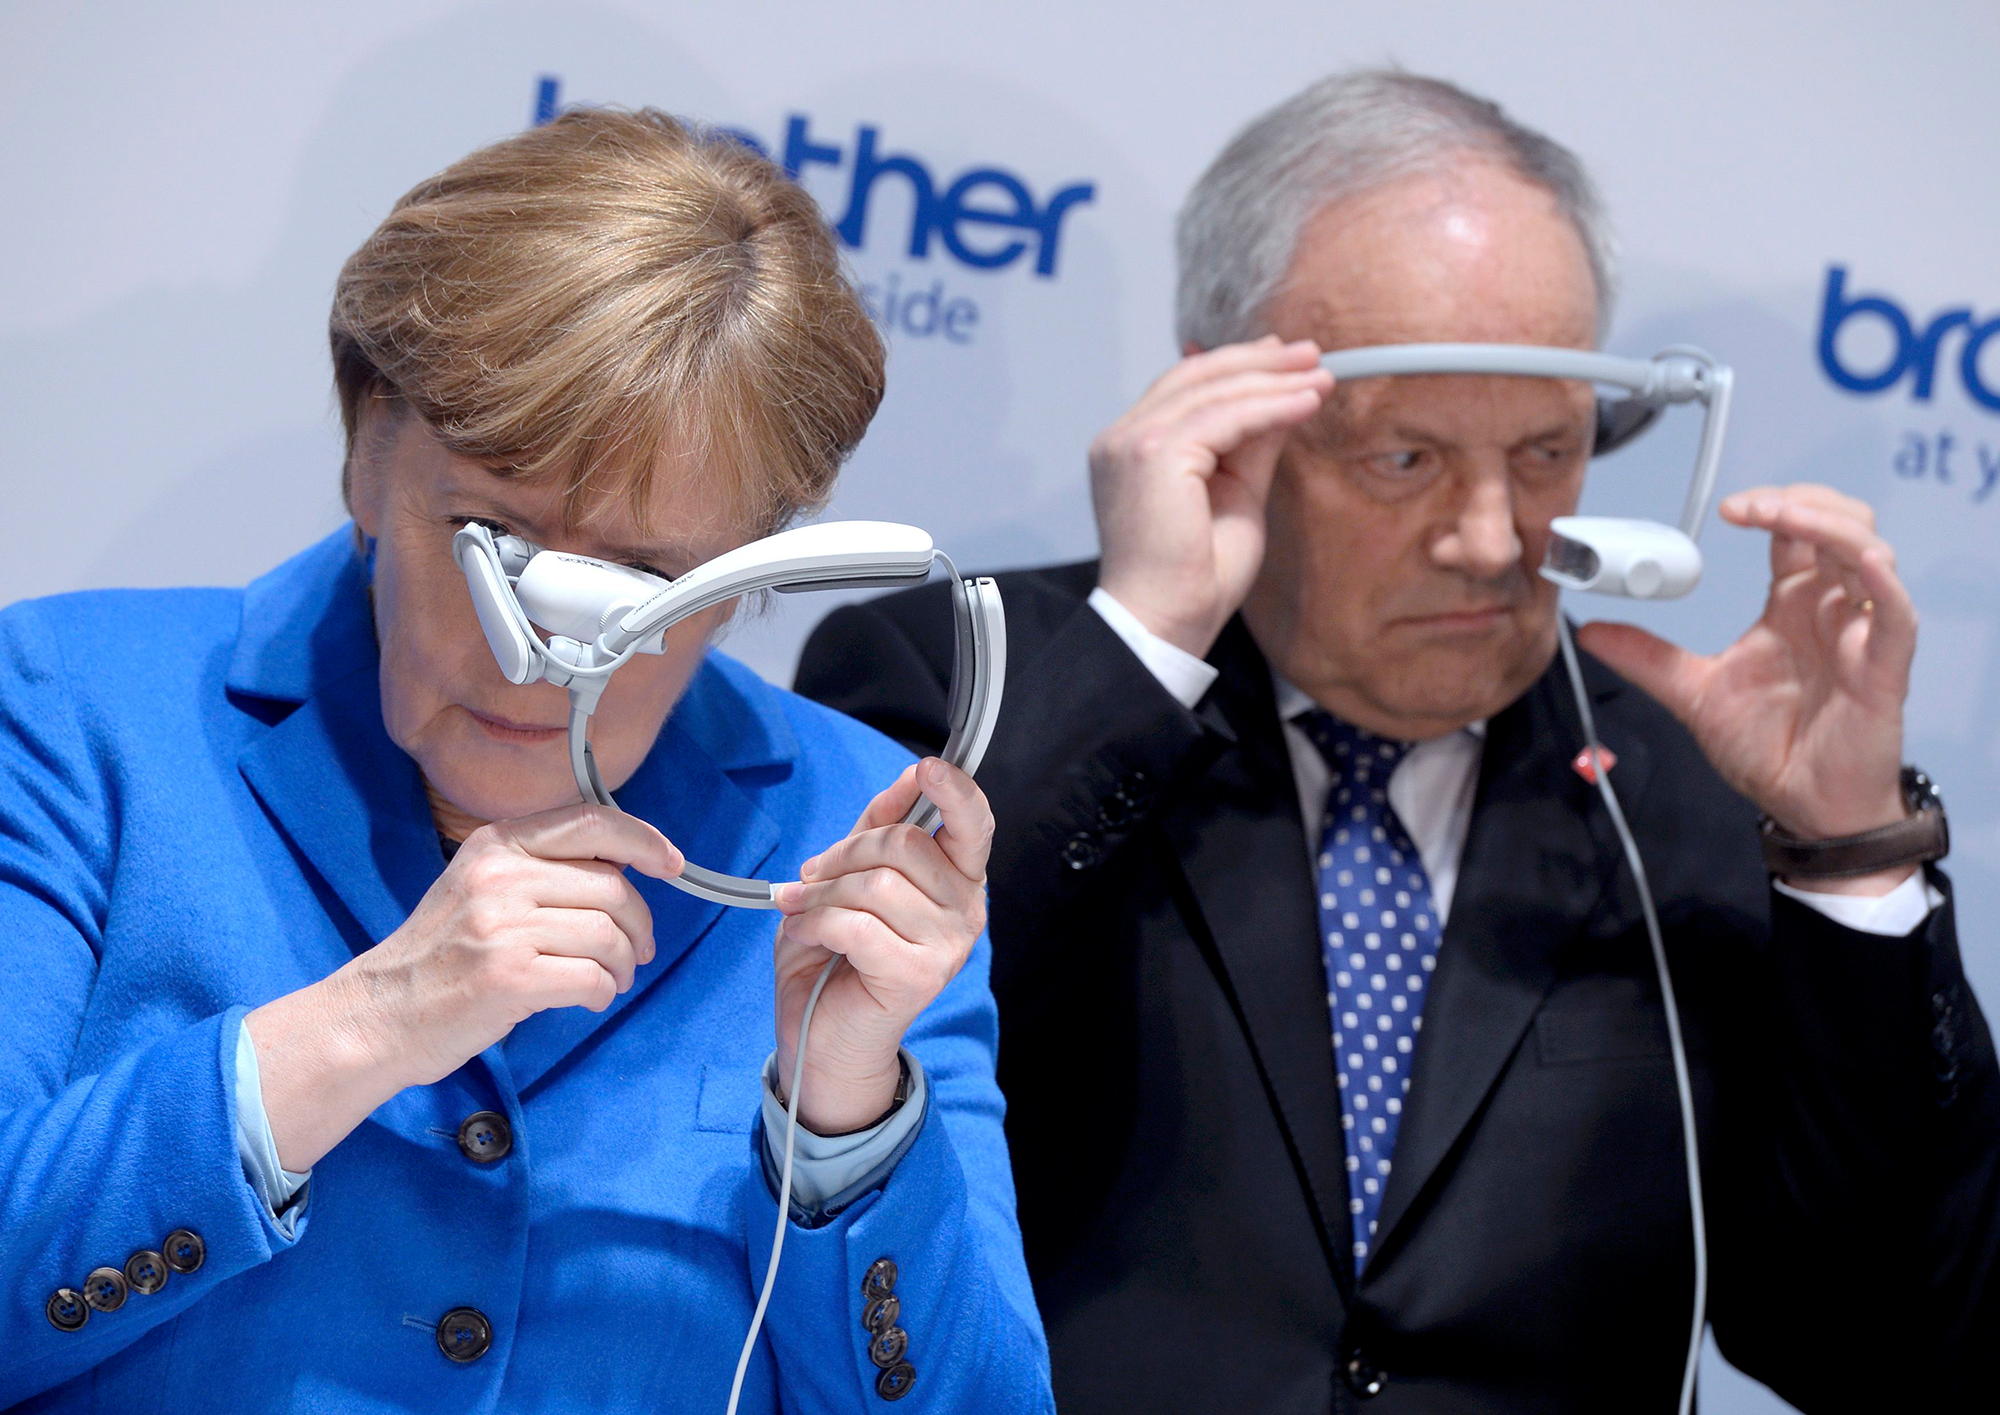 German Chancellor Angela Merkel and Swiss President Johann Schneider-Ammann (R) look at head-mounted display units on the Bro